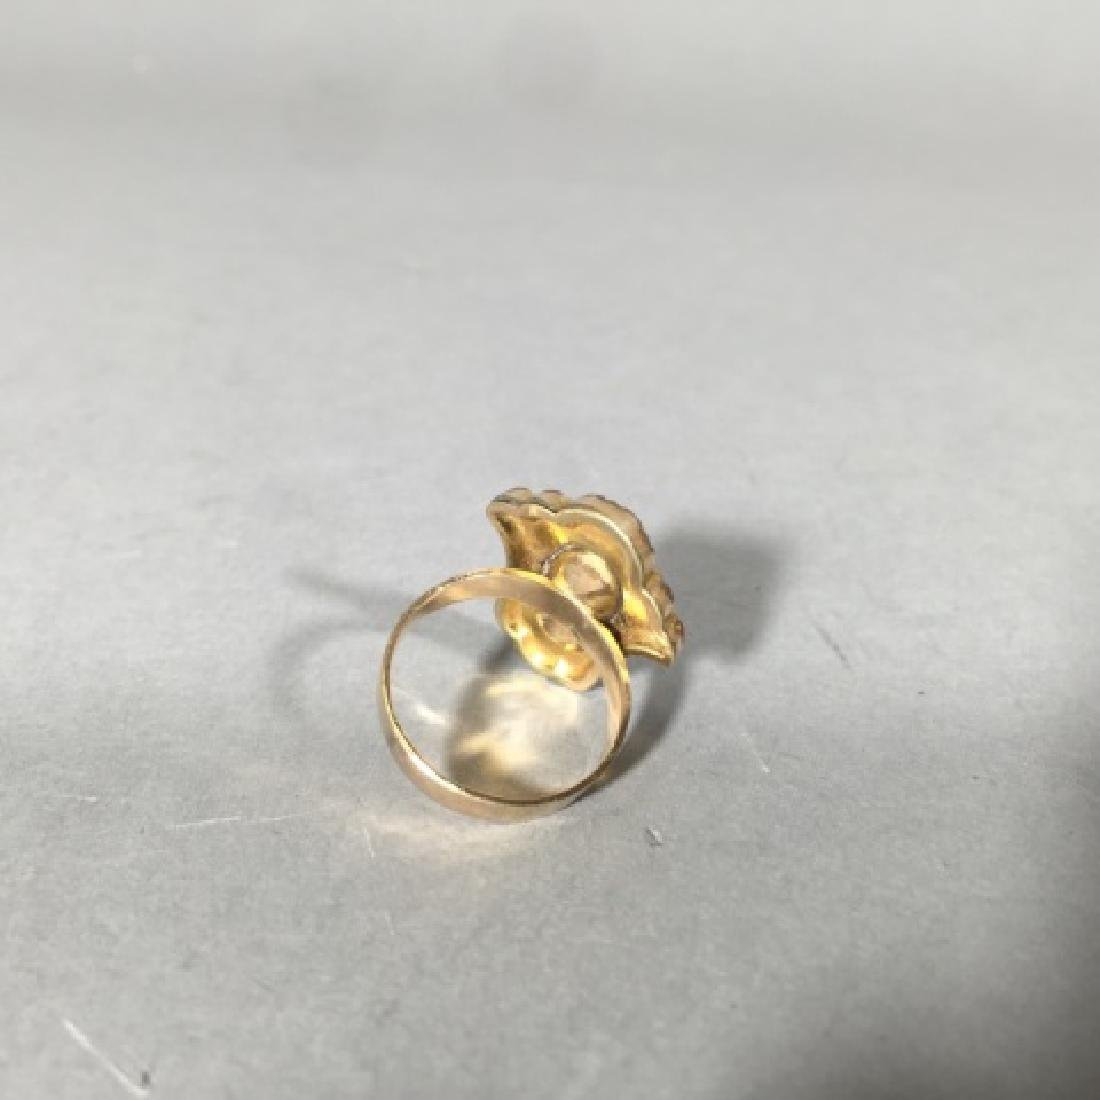 Antique 19th C Victorian Chased Yellow Gold Ring - 3